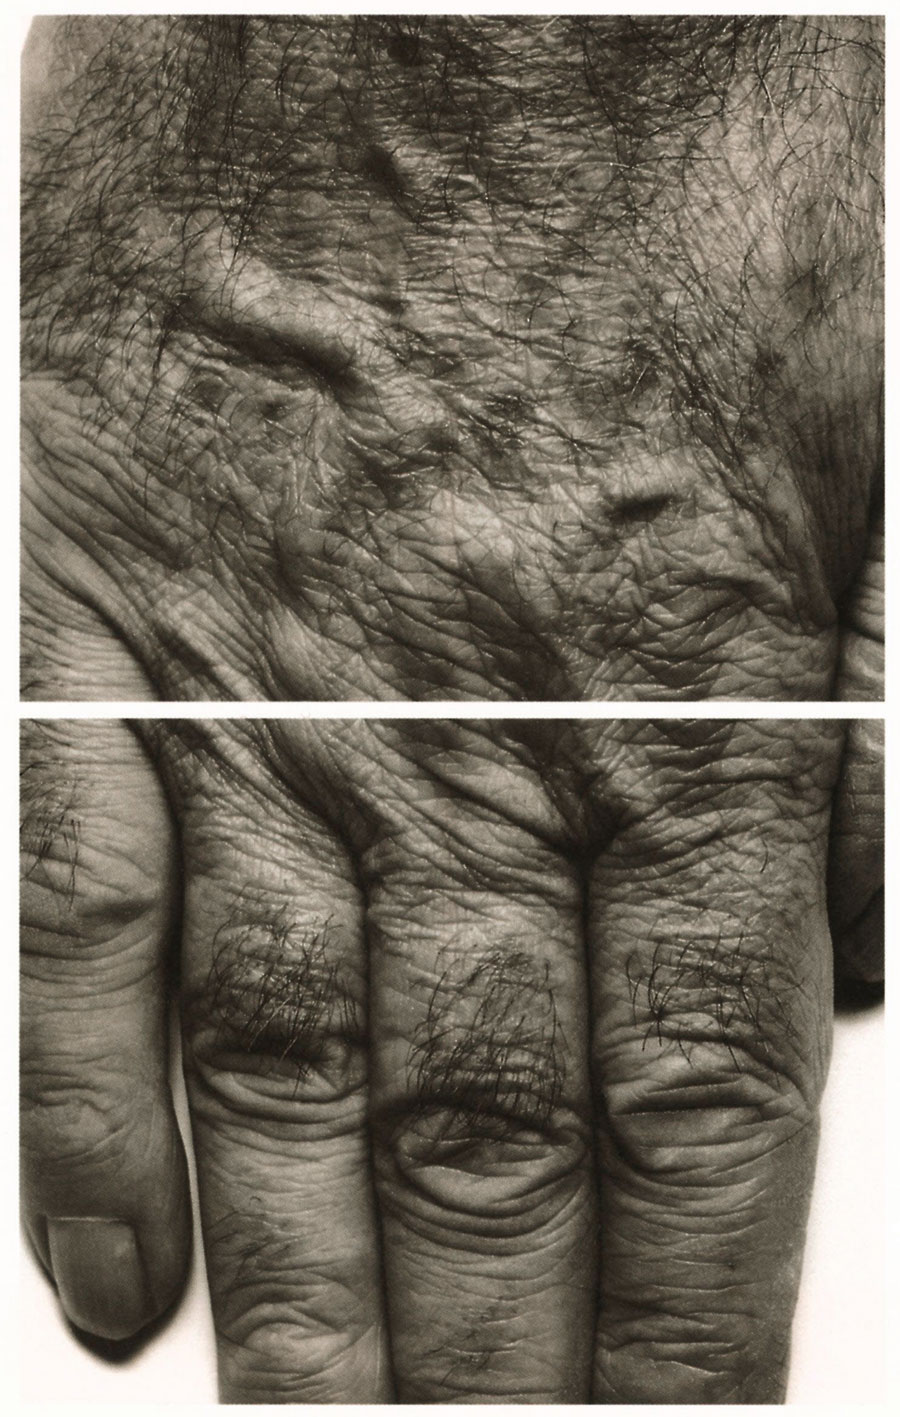 http://artblart.files.wordpress.com/2012/11/john-coplans-self-portrait-hands-1988.jpg